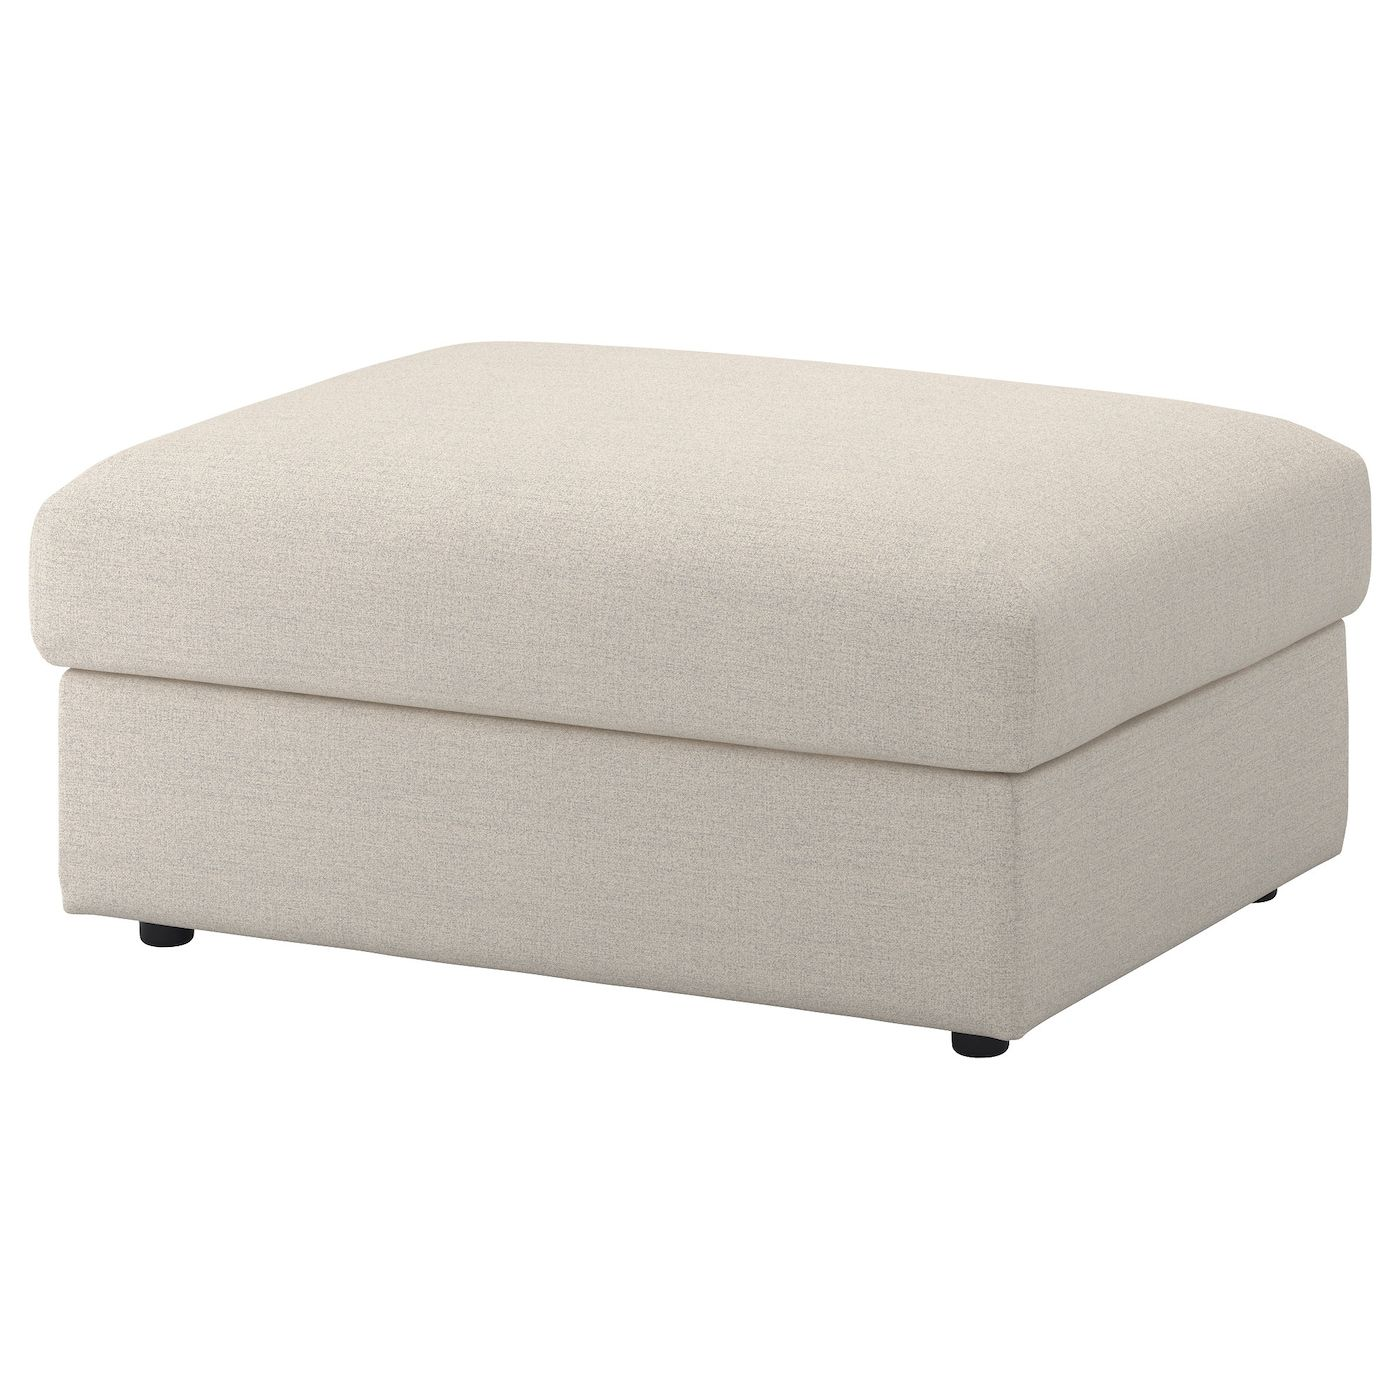 Vimle Gunnared Beige Footstool With Storage Ikea In 2020 Storage Footstool Storage Ottoman Ikea